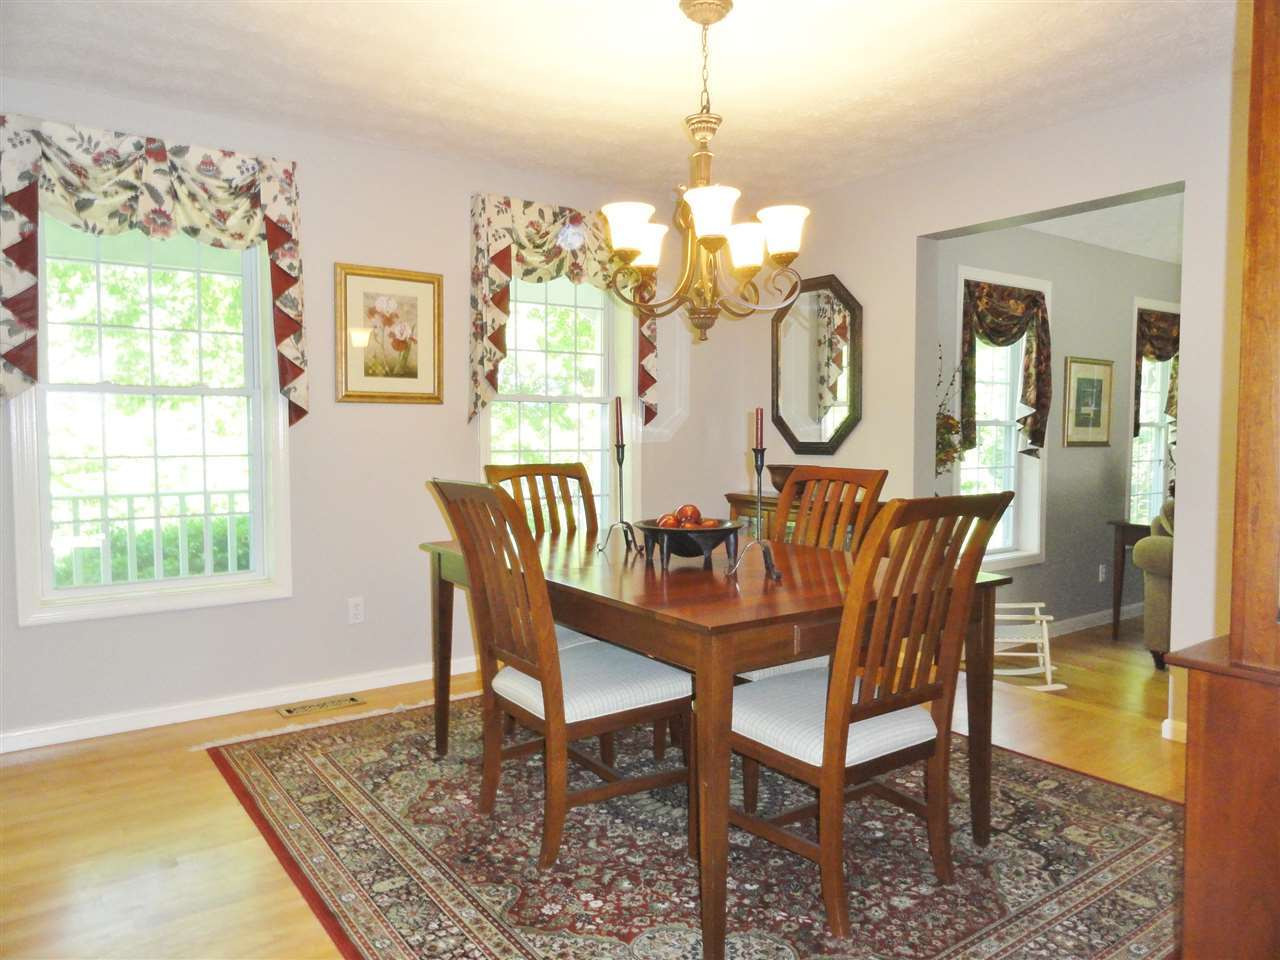 hardwood flooring bedford nh of listing 21 hampshire hills dr bow nh mls 4697466 bob beilman pertaining to property photo